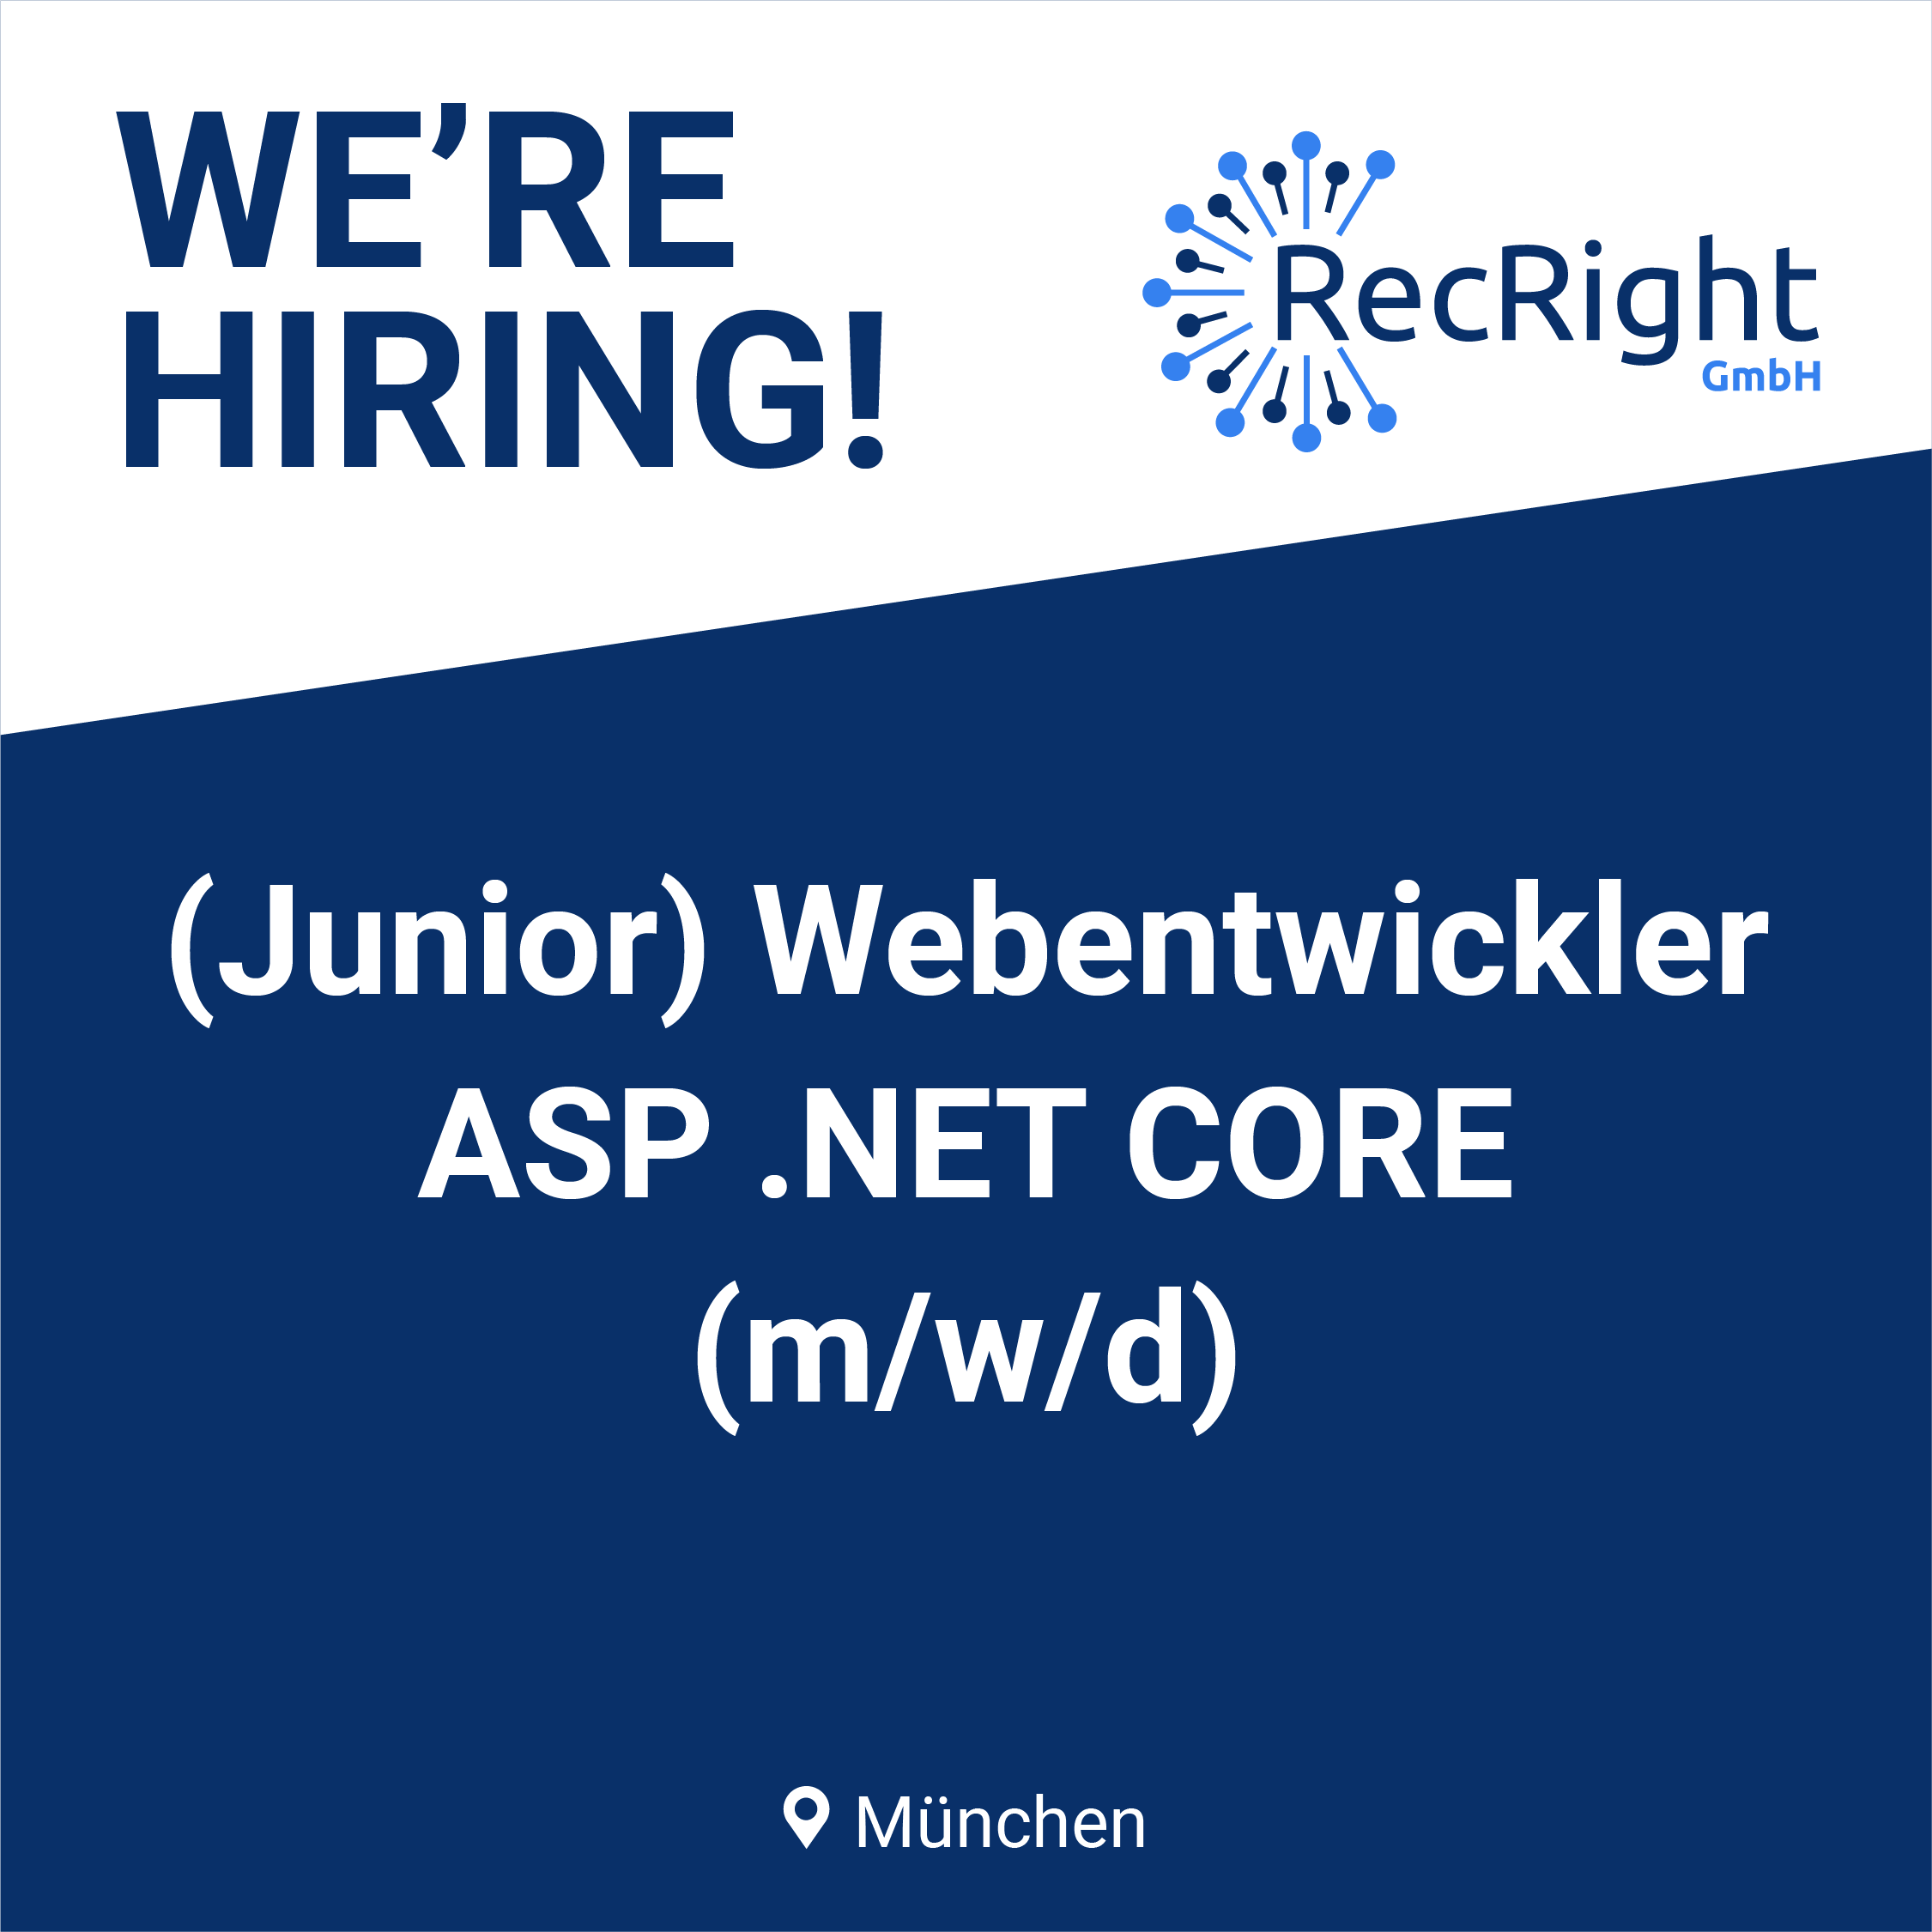 (Junior) Webentwickler ASP.NET CORE in München